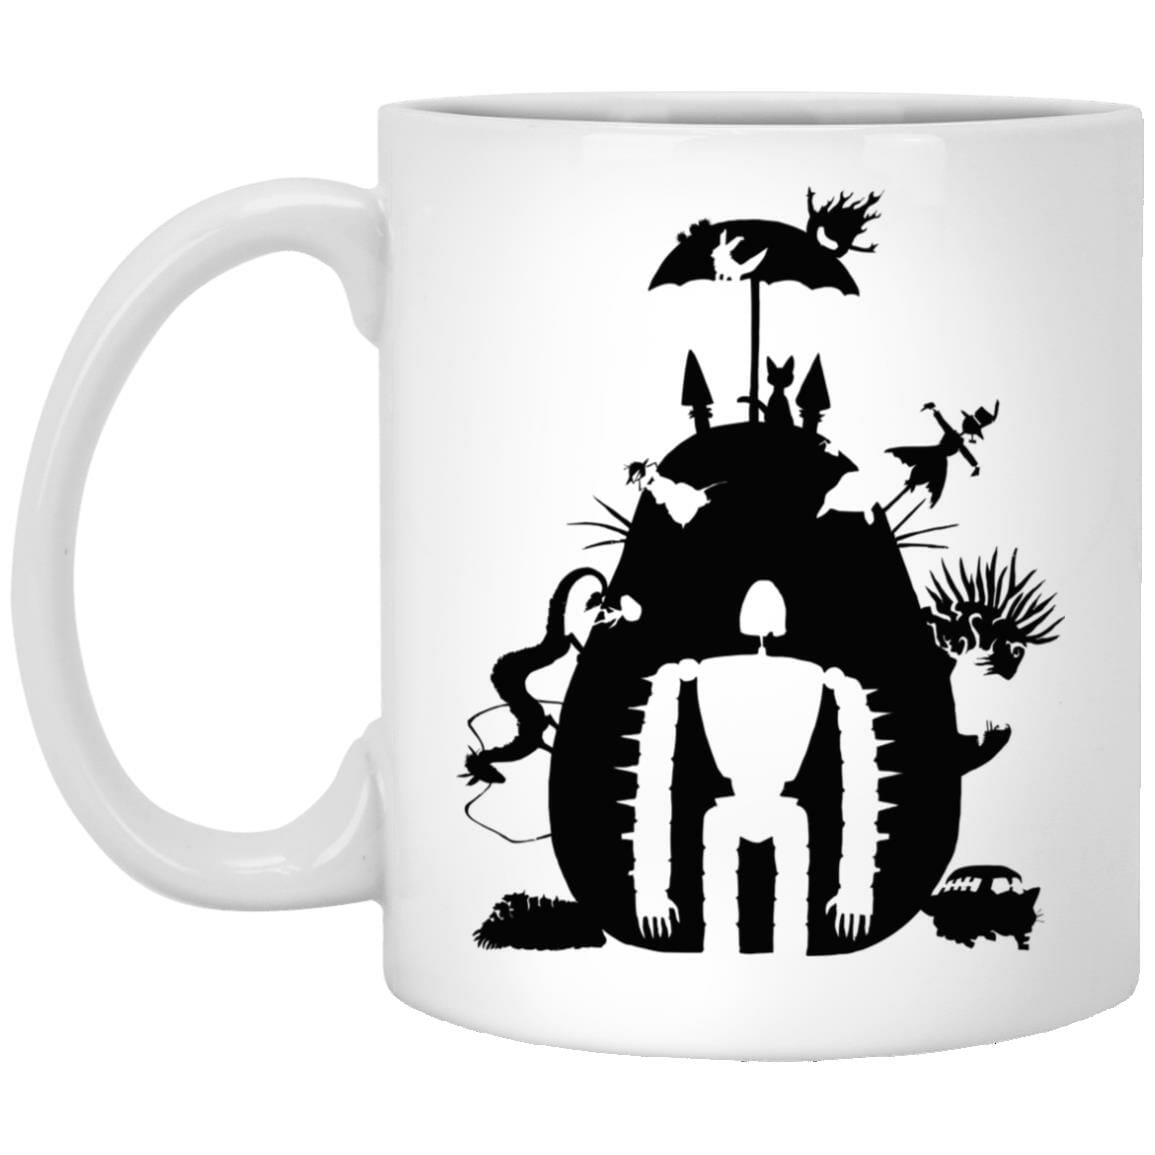 Studio Ghibli Black & White Art Compilation Mug